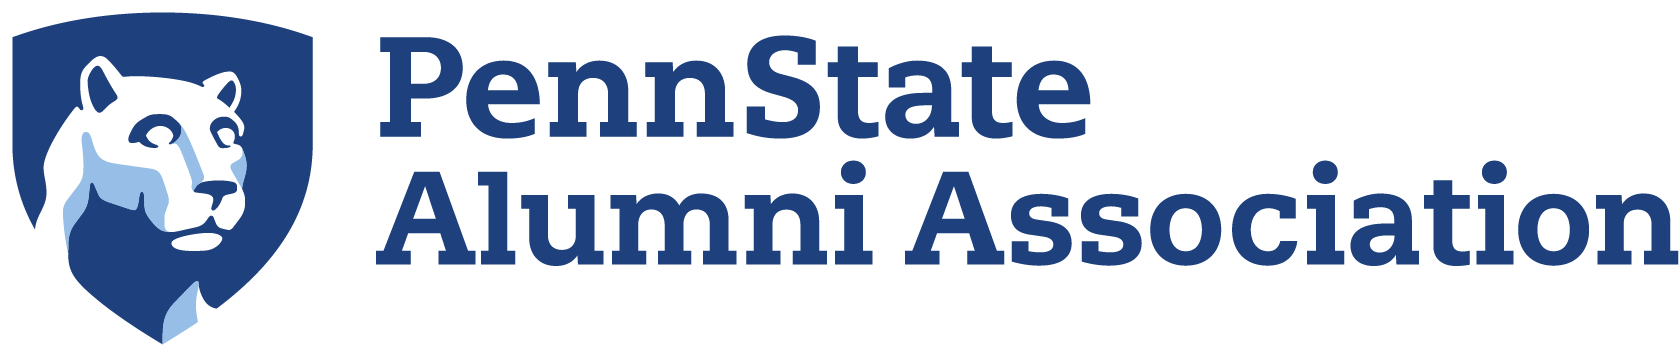 Penn State Alumni Association